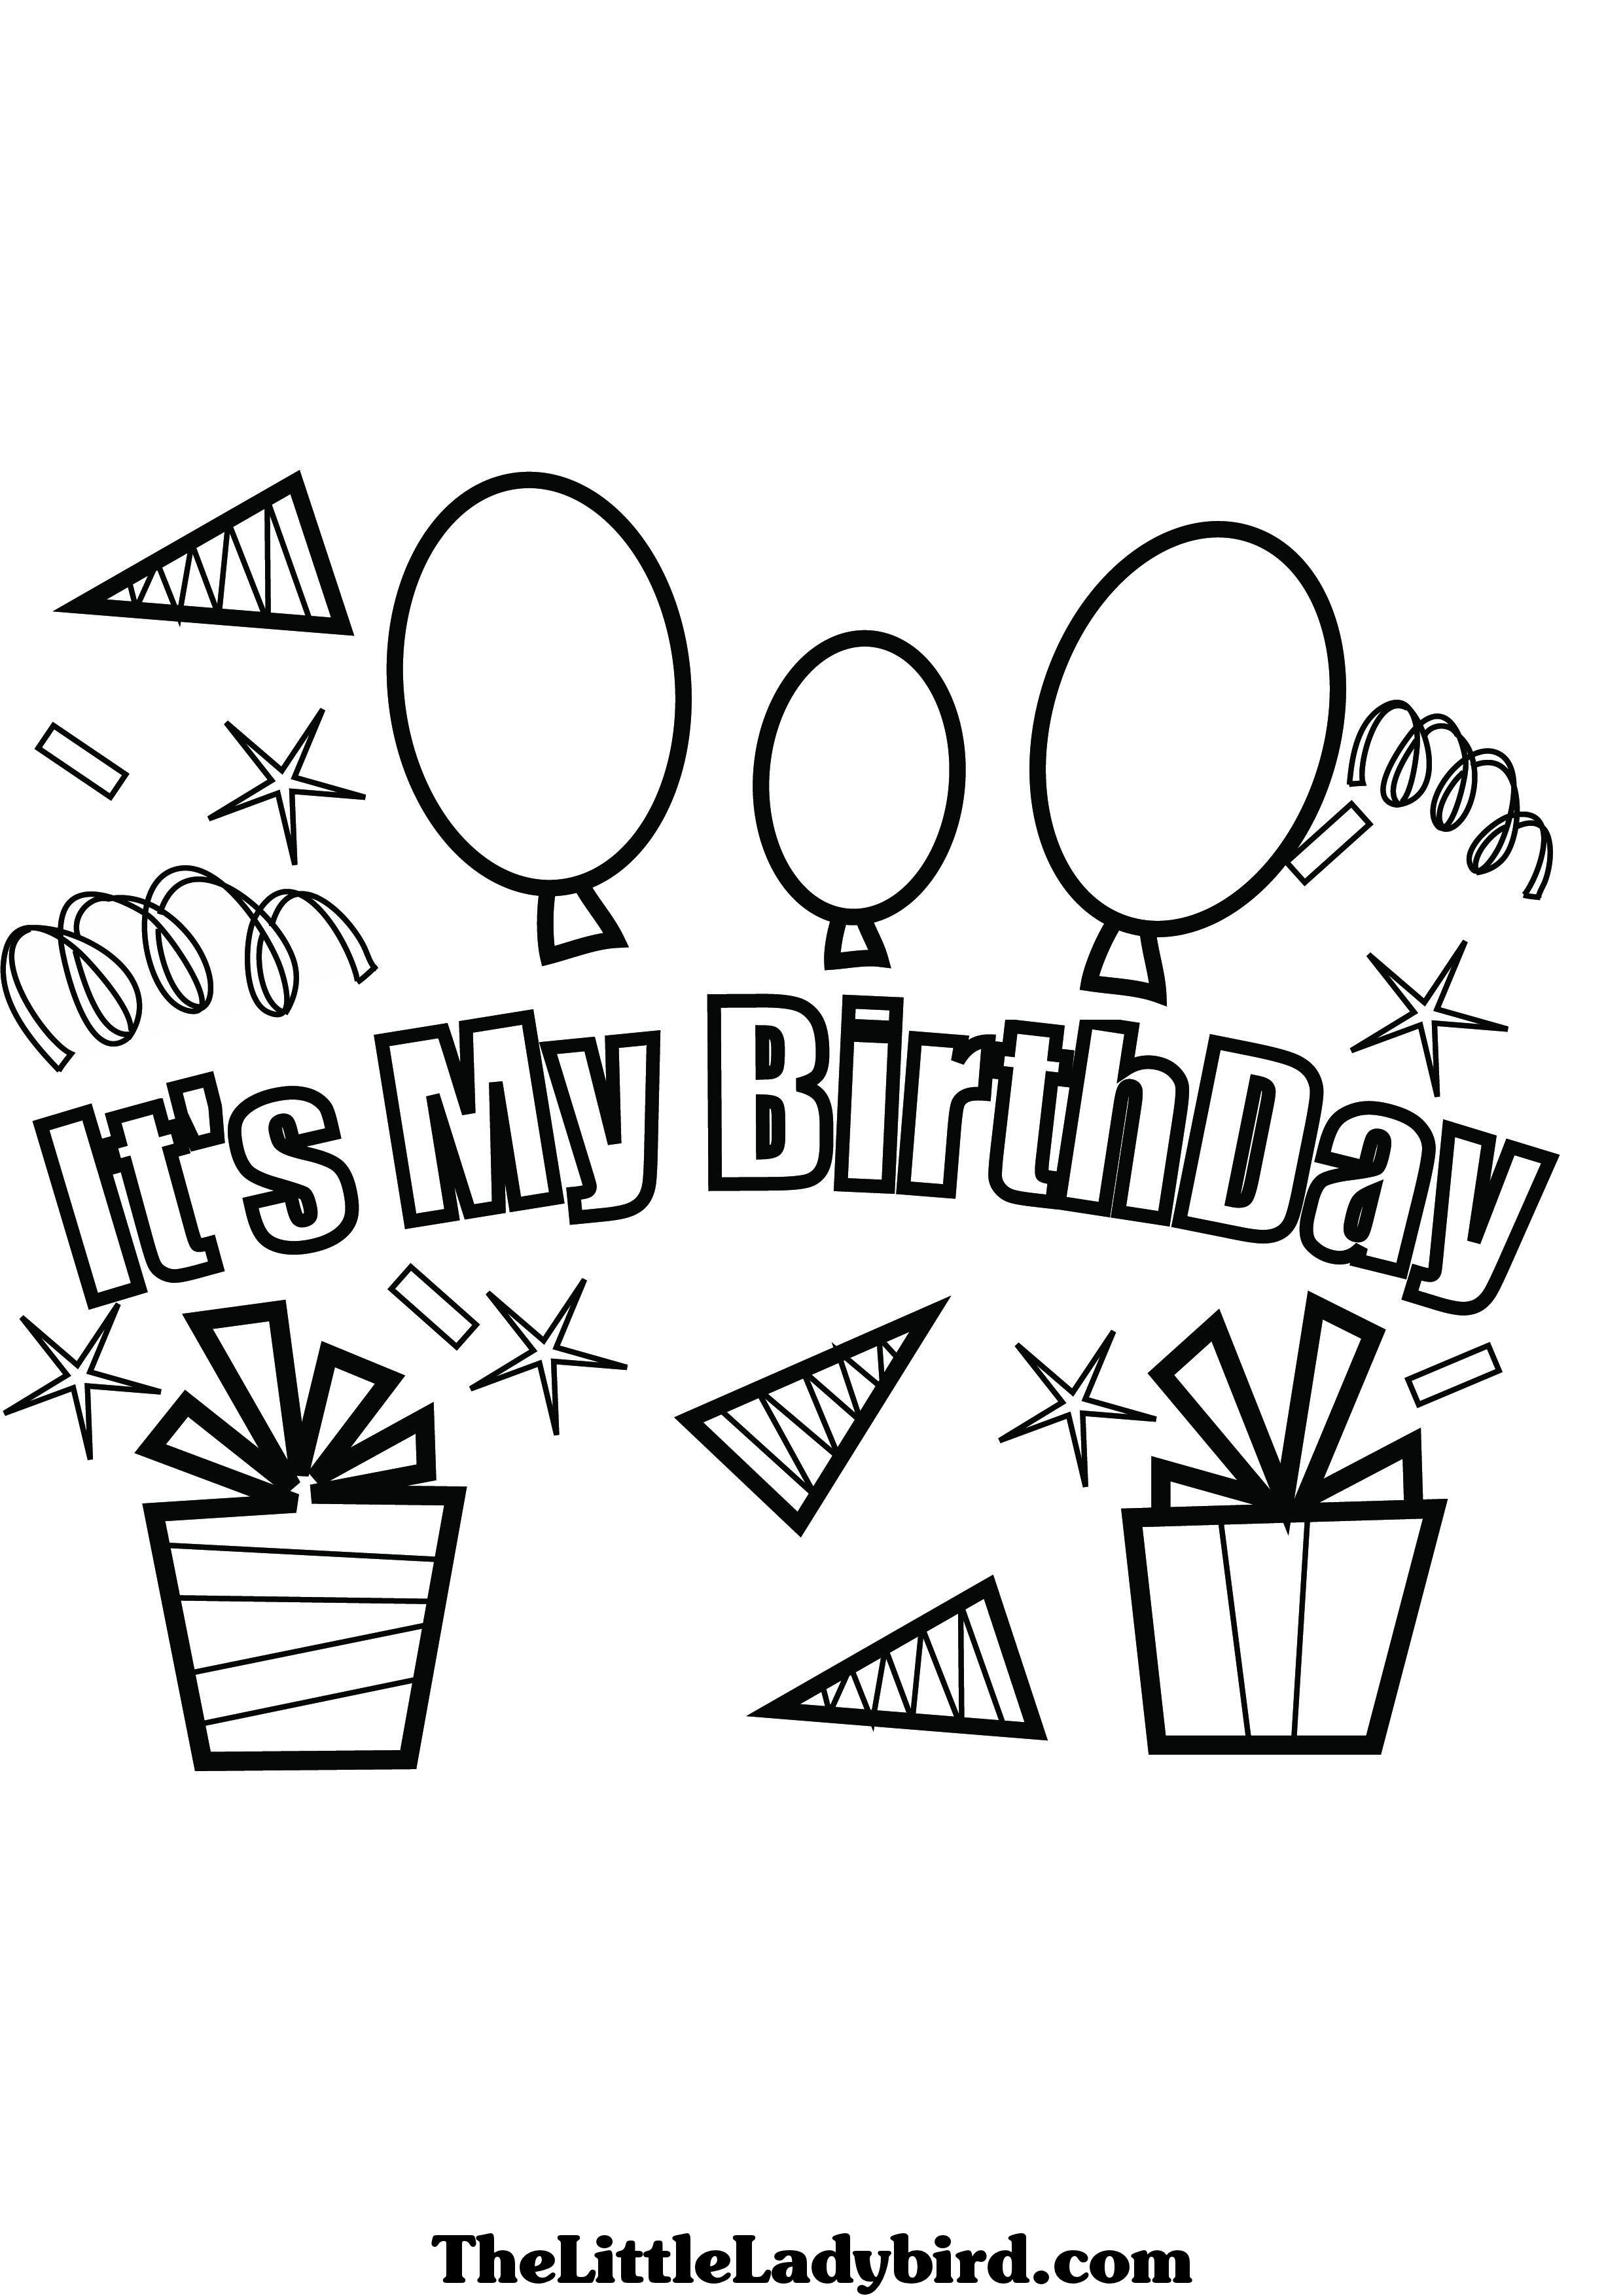 birthday party coloring pages - Bing Images | Kids Coloring for my ...